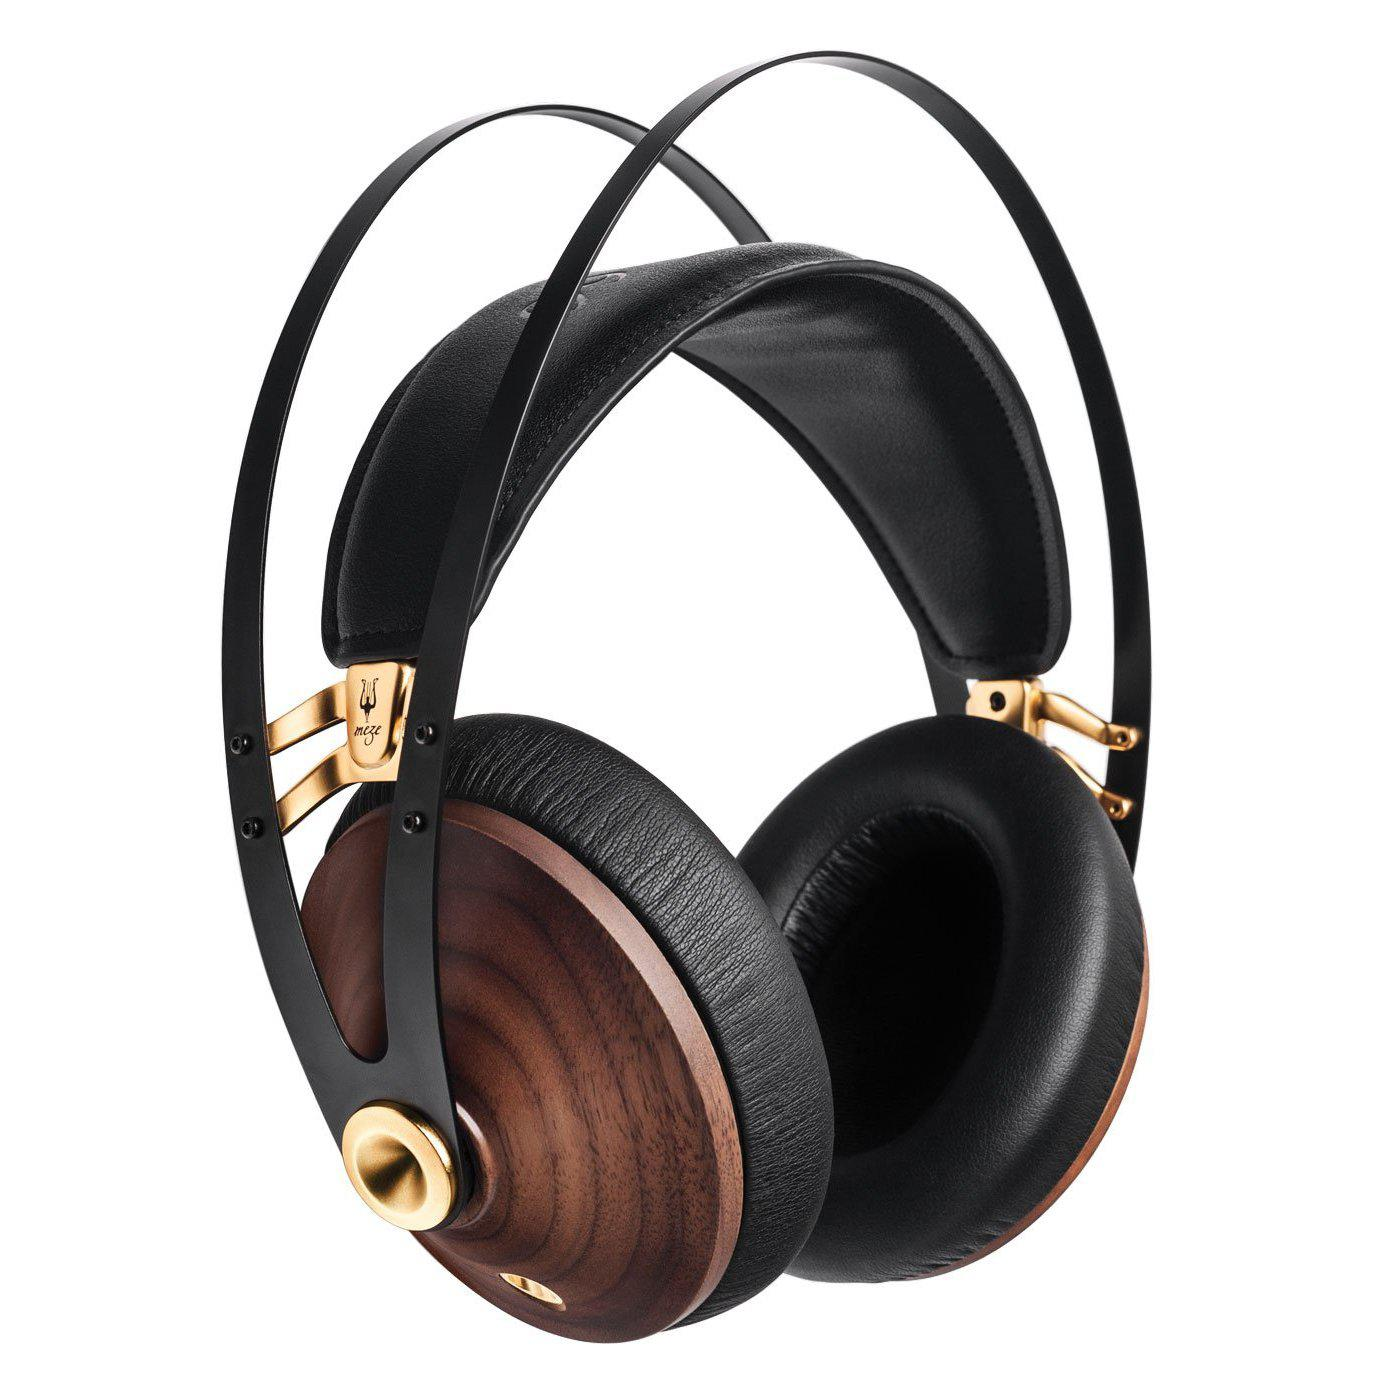 Meze 99 Classics Closed-Back Dynamic Headphones